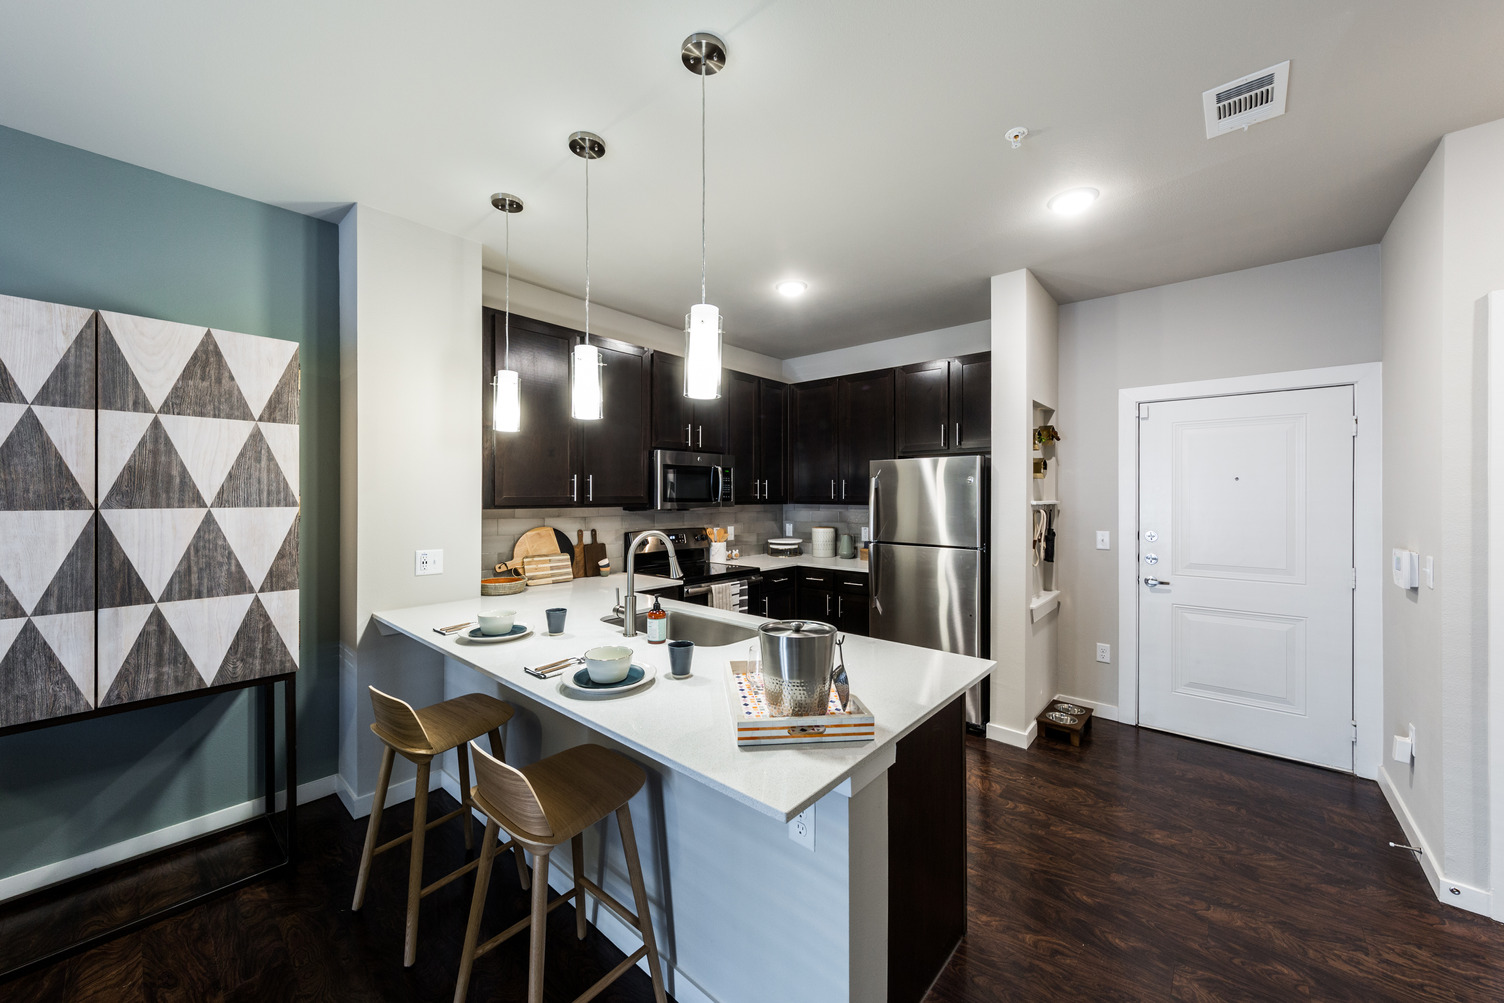 Model apartment kitchen with barstool seating, undermount sink, and dark kitchen cabinets